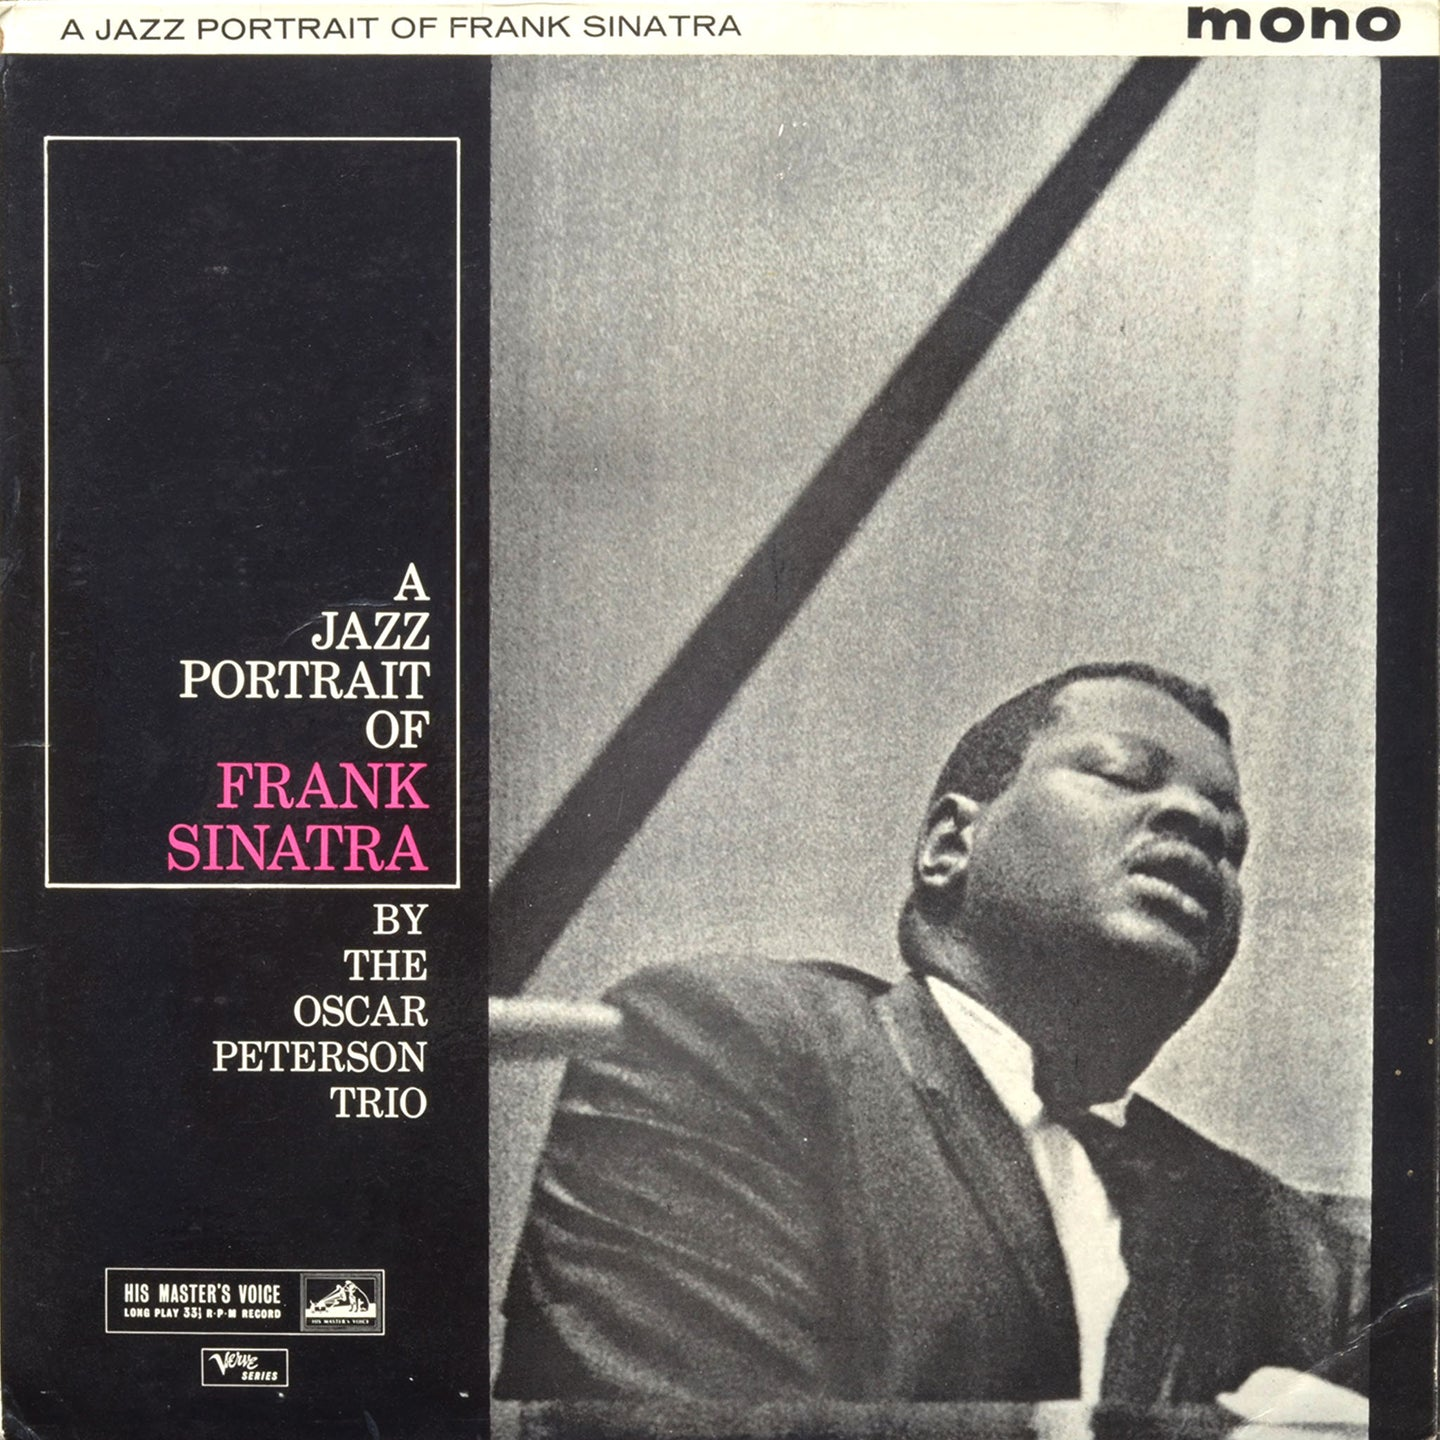 The Oscar Peterson Trio - Jazz Portrait of Frank Sinatra